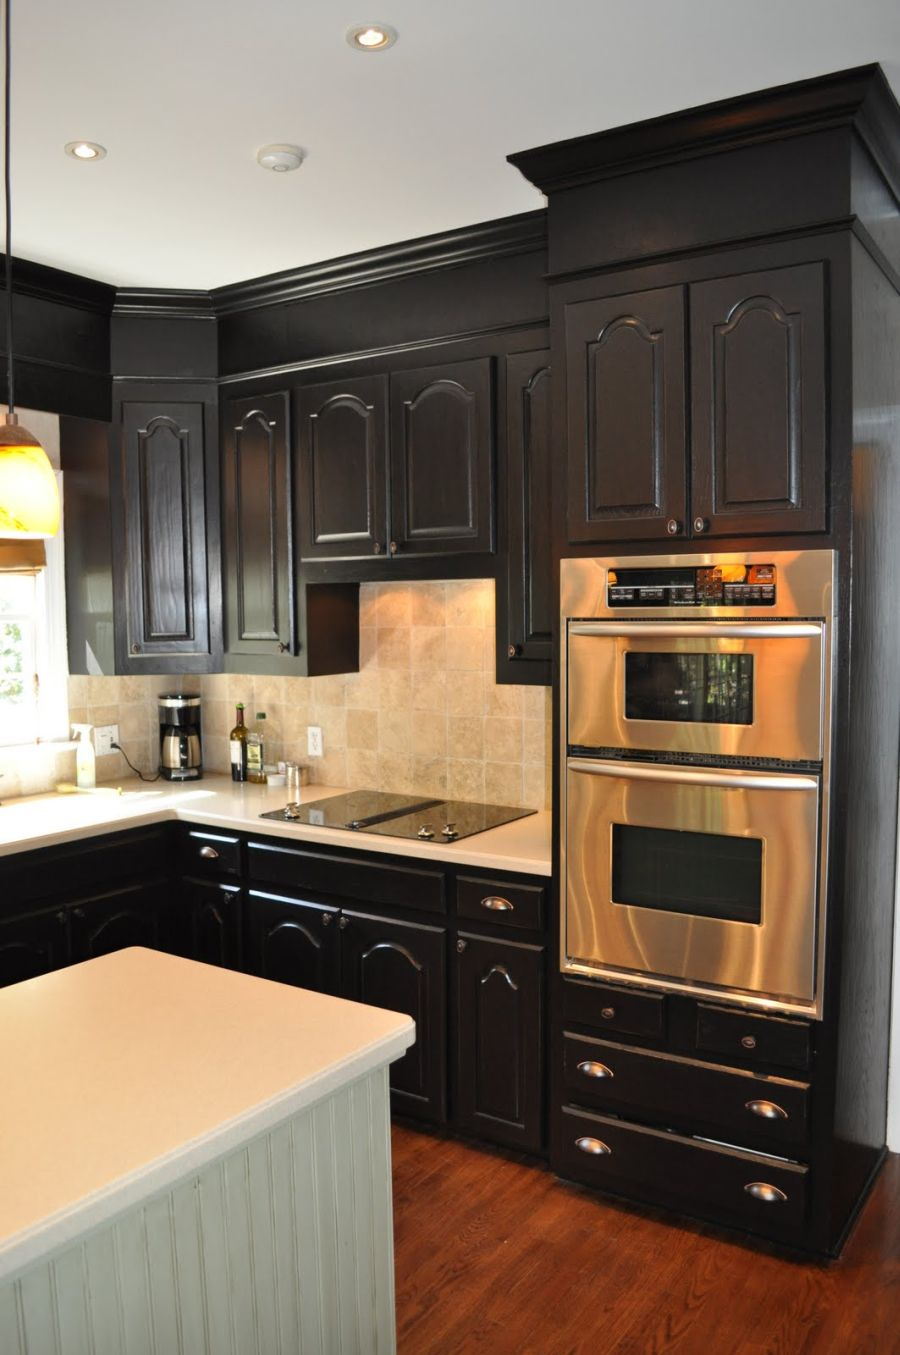 black kitchen cabinets black kitchen cabinets Black Cabinets with Soffits